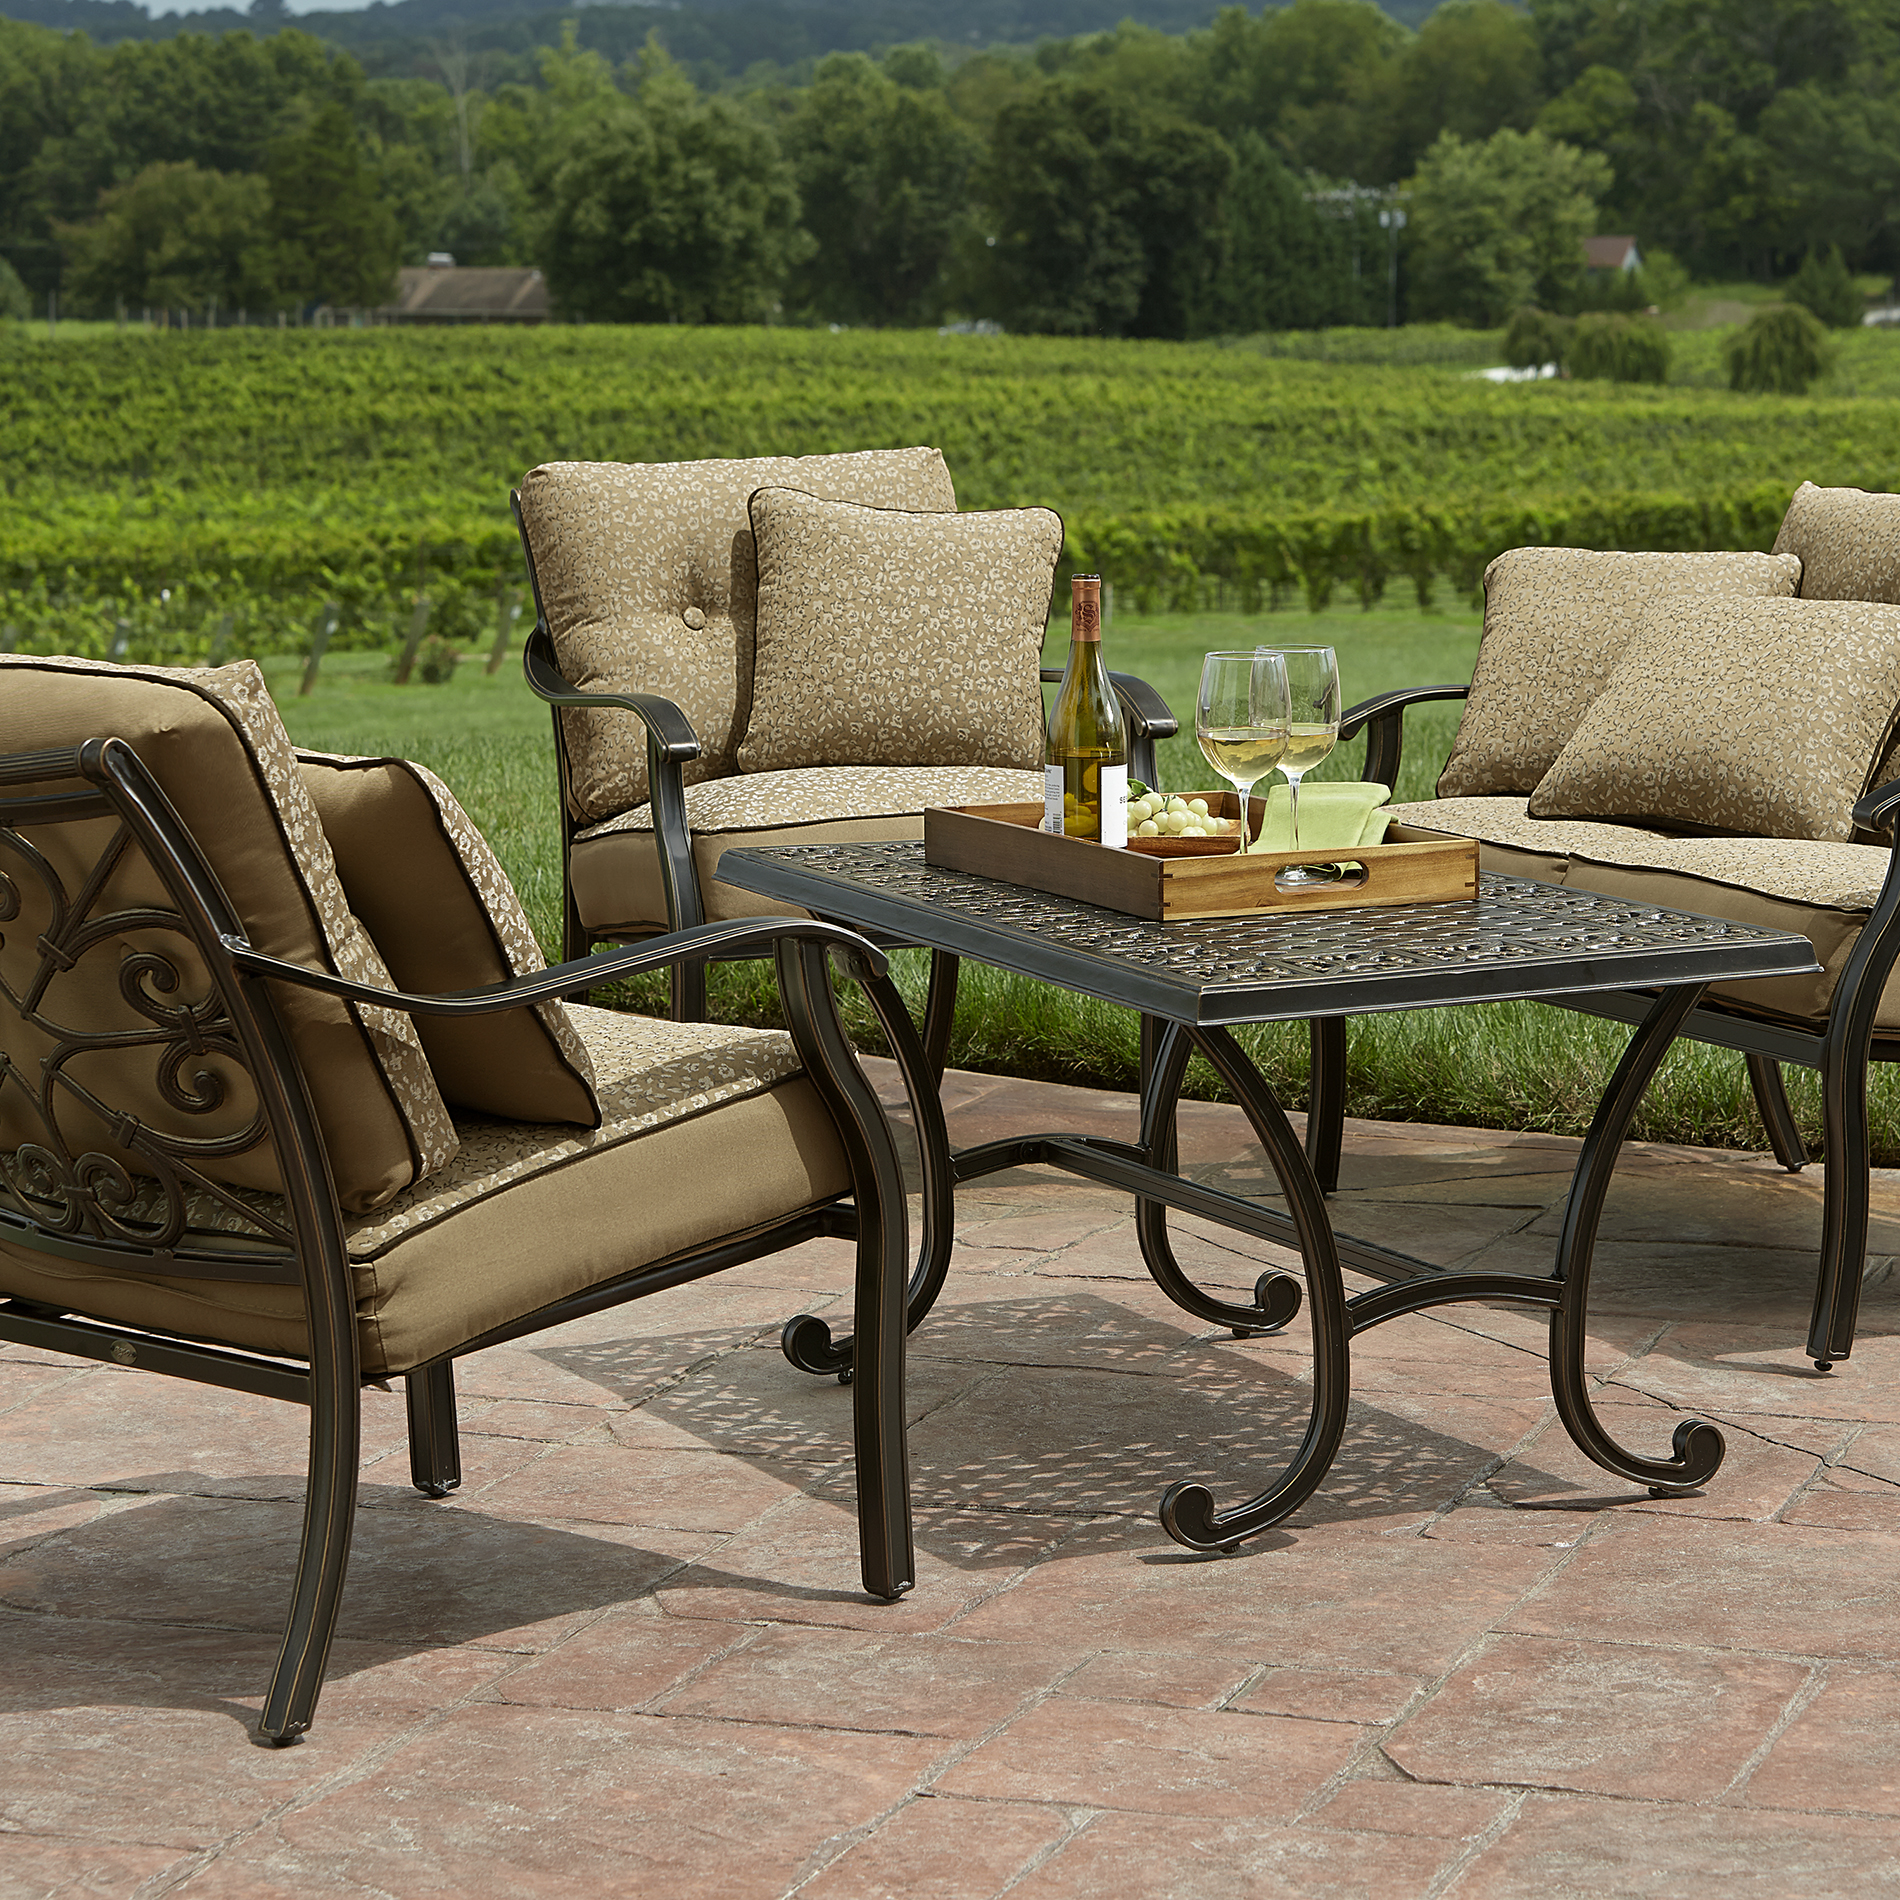 outsunny 4pc rattan wicker outdoor patio furniture sofa set reclining chaise casual chairs: find seating at sears